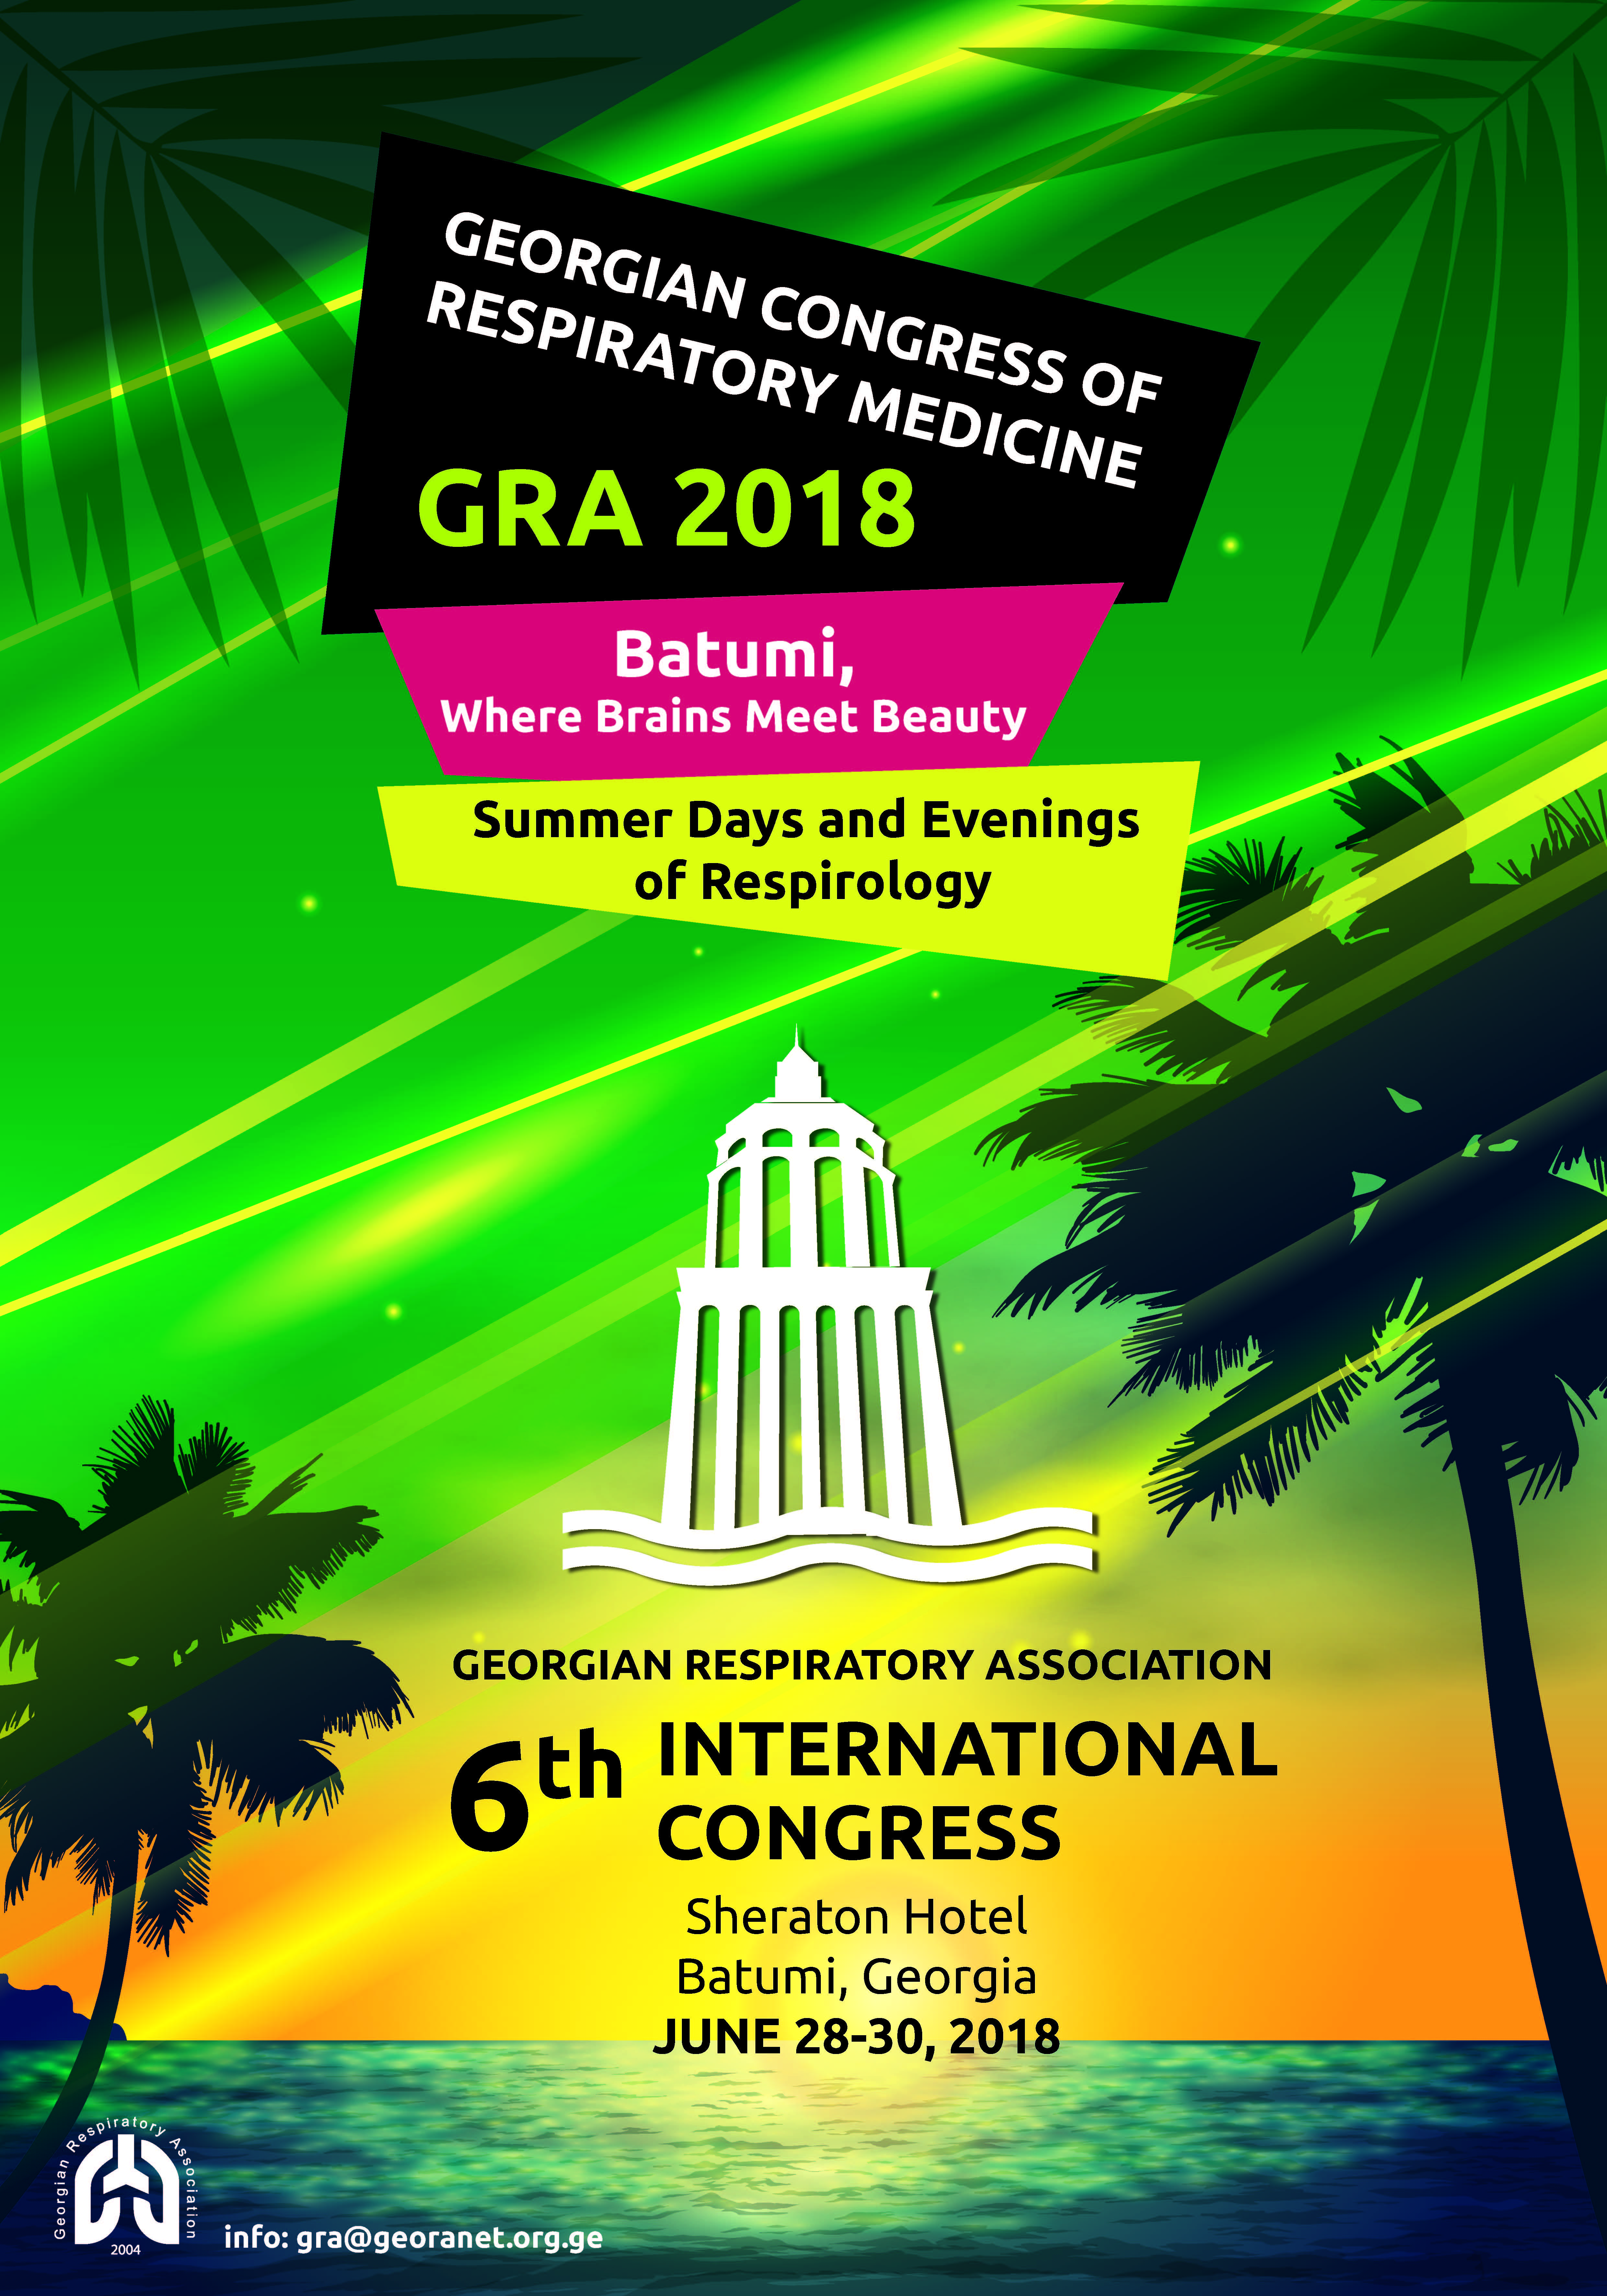 It Is A Great Pleasure To Welcome You 6th International Congress Of The Georgian Respiratory Association We Are Delighted That So Many Esteemed Guests